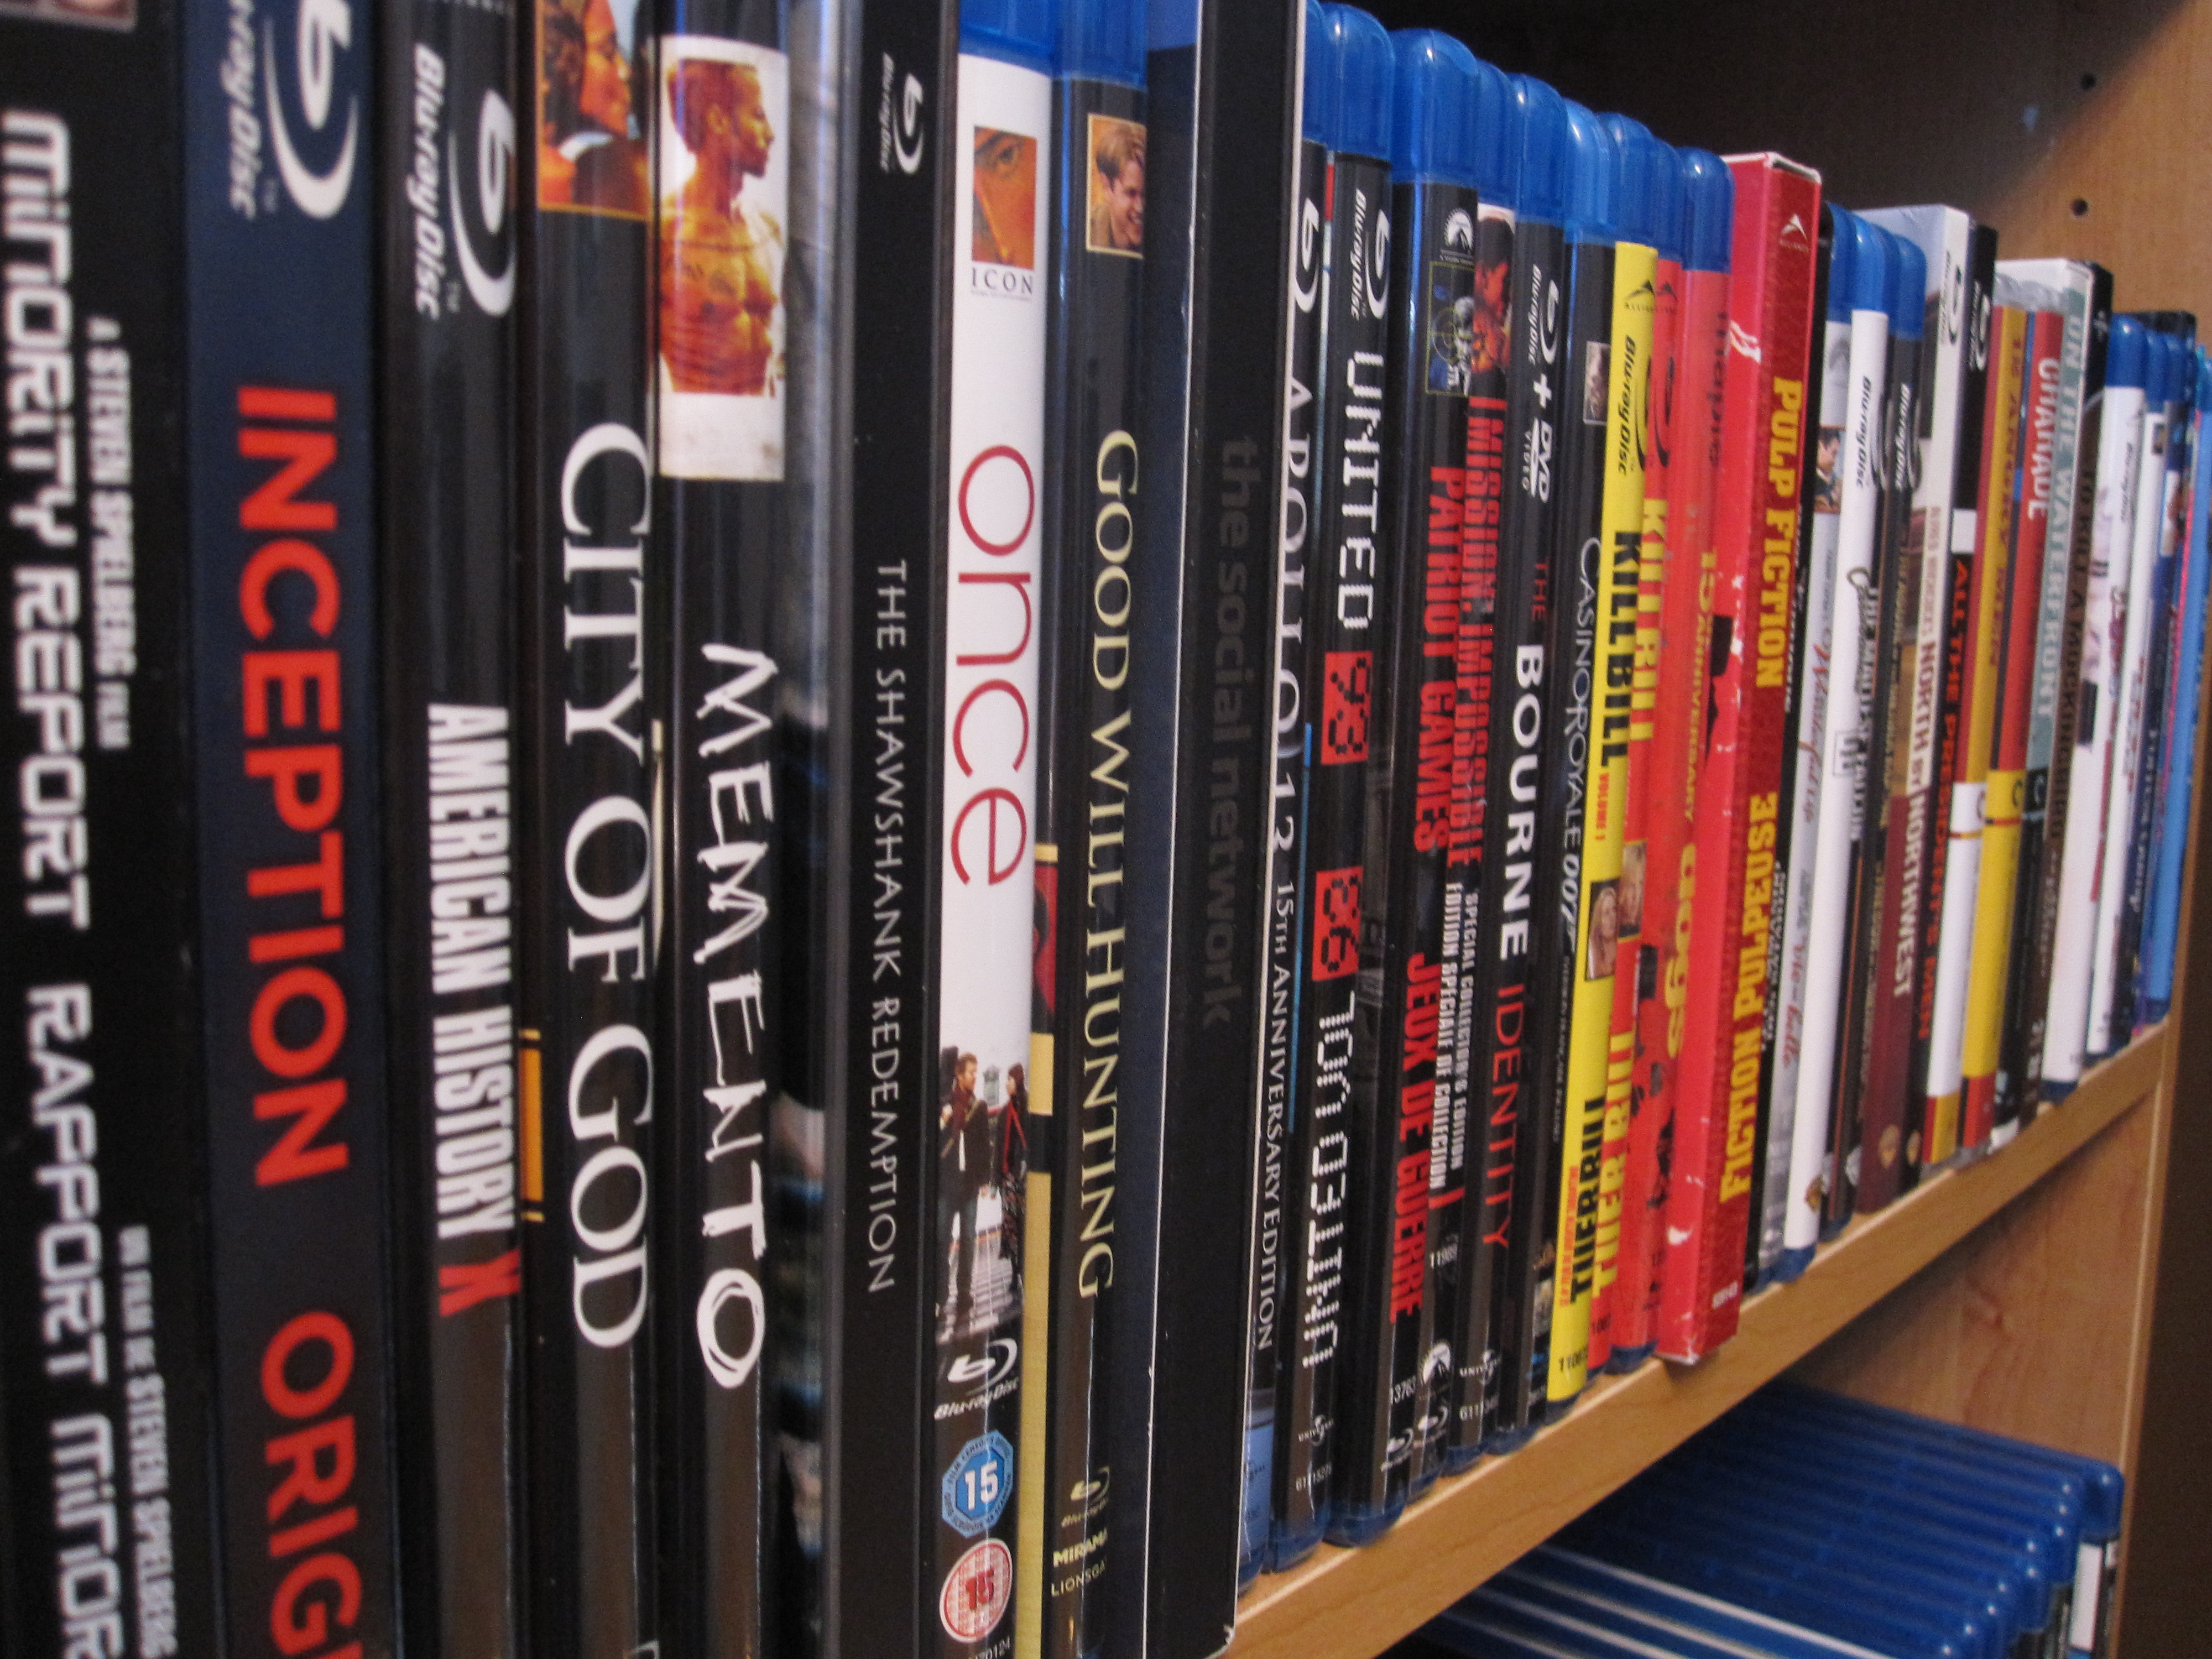 Confessions of a Blu-ray Collector: Organization | Ian's Movie Reviews